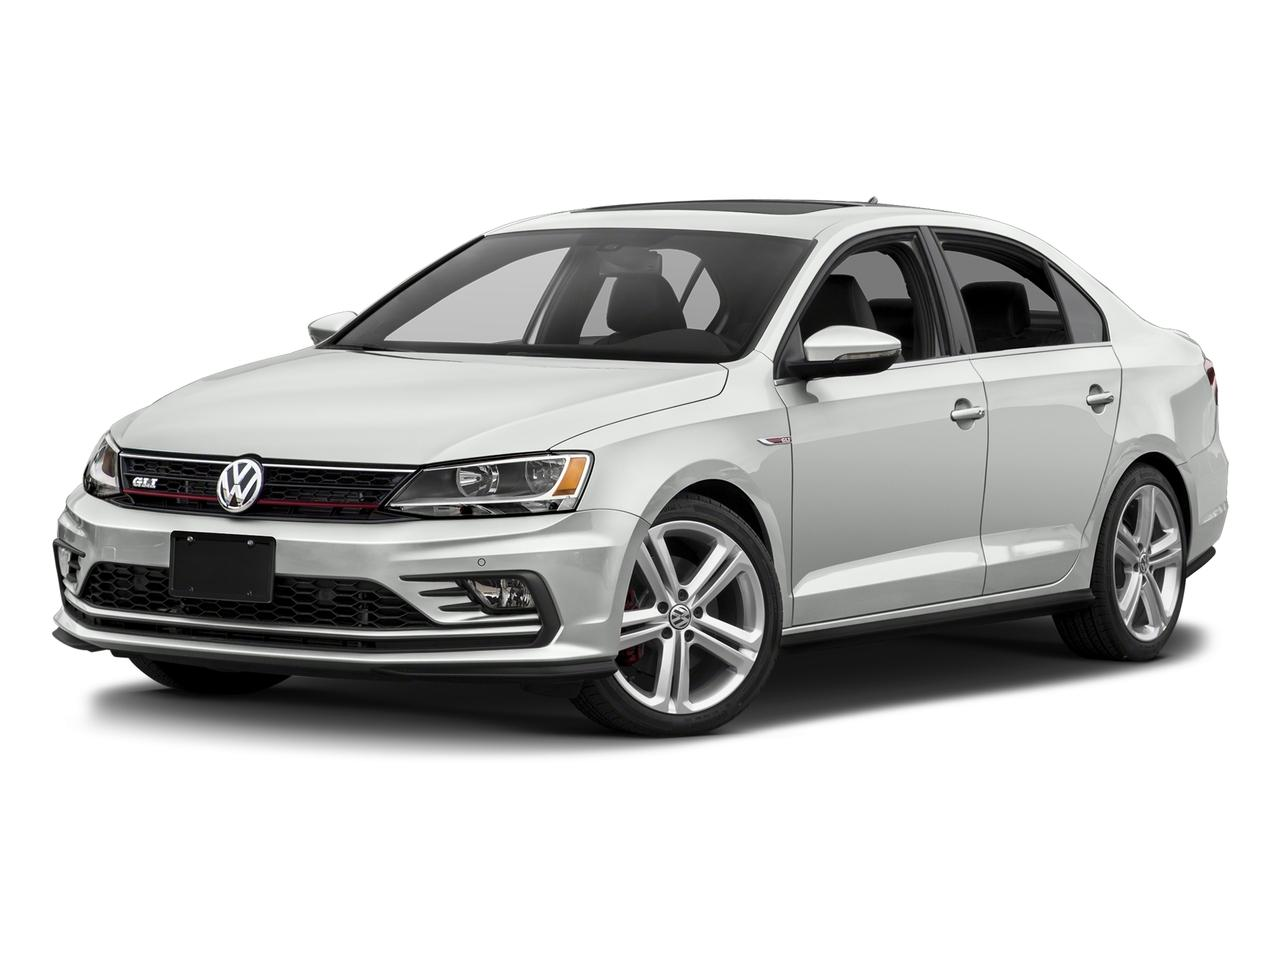 2017 Volkswagen Jetta Vehicle Photo in Colma, CA 94014